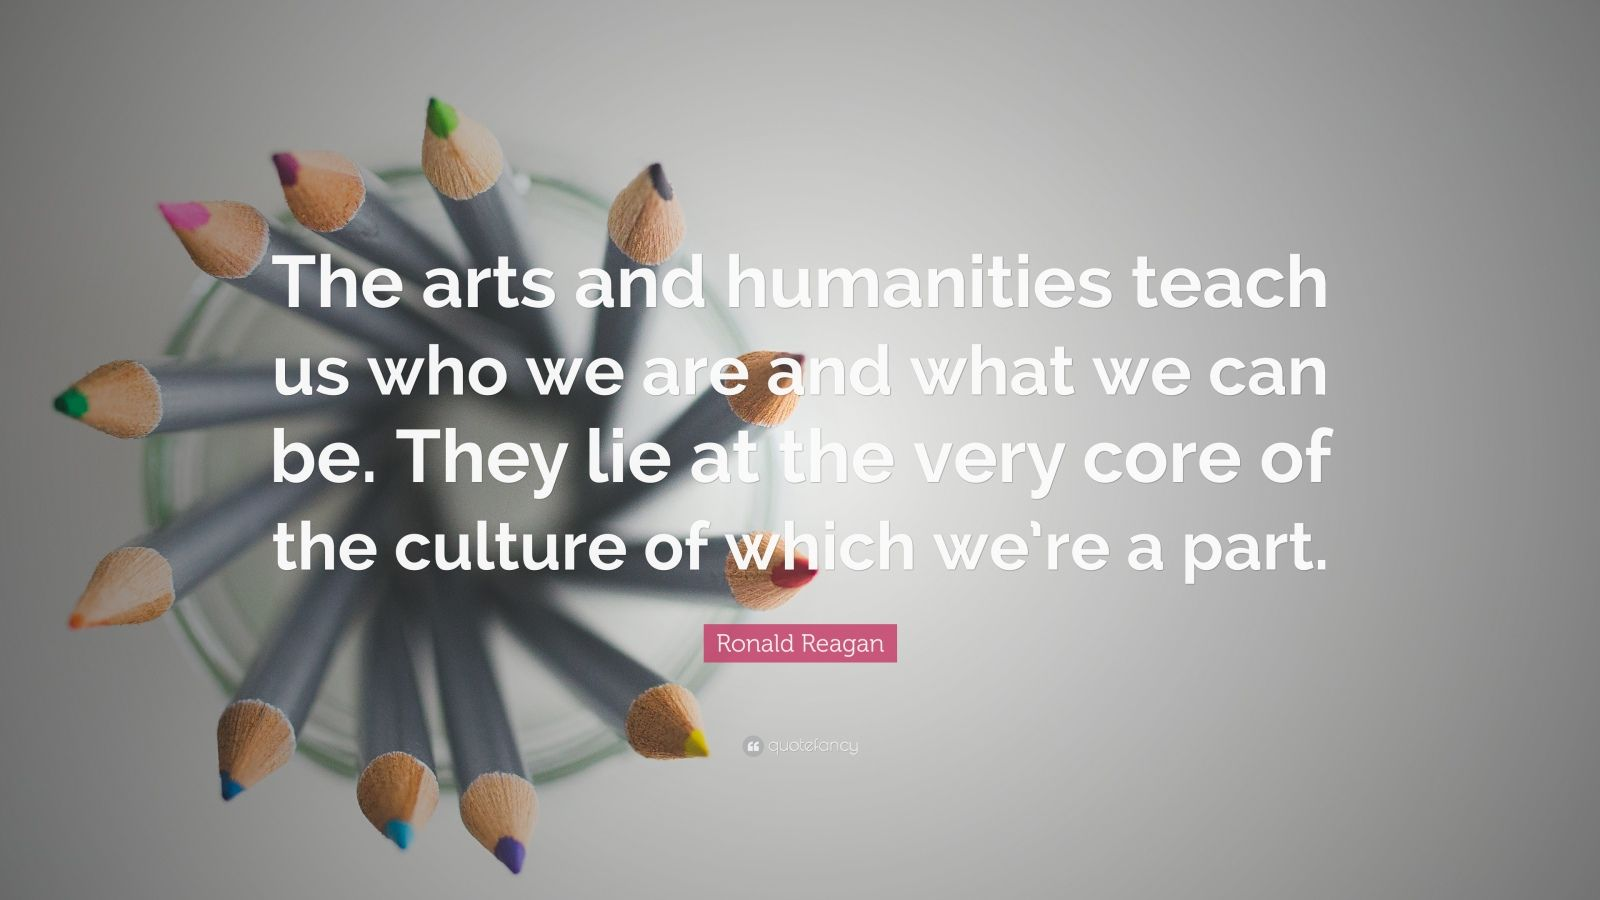 Future Quotes Wallpaper Ronald Reagan Quote The Arts And Humanities Teach Us Who